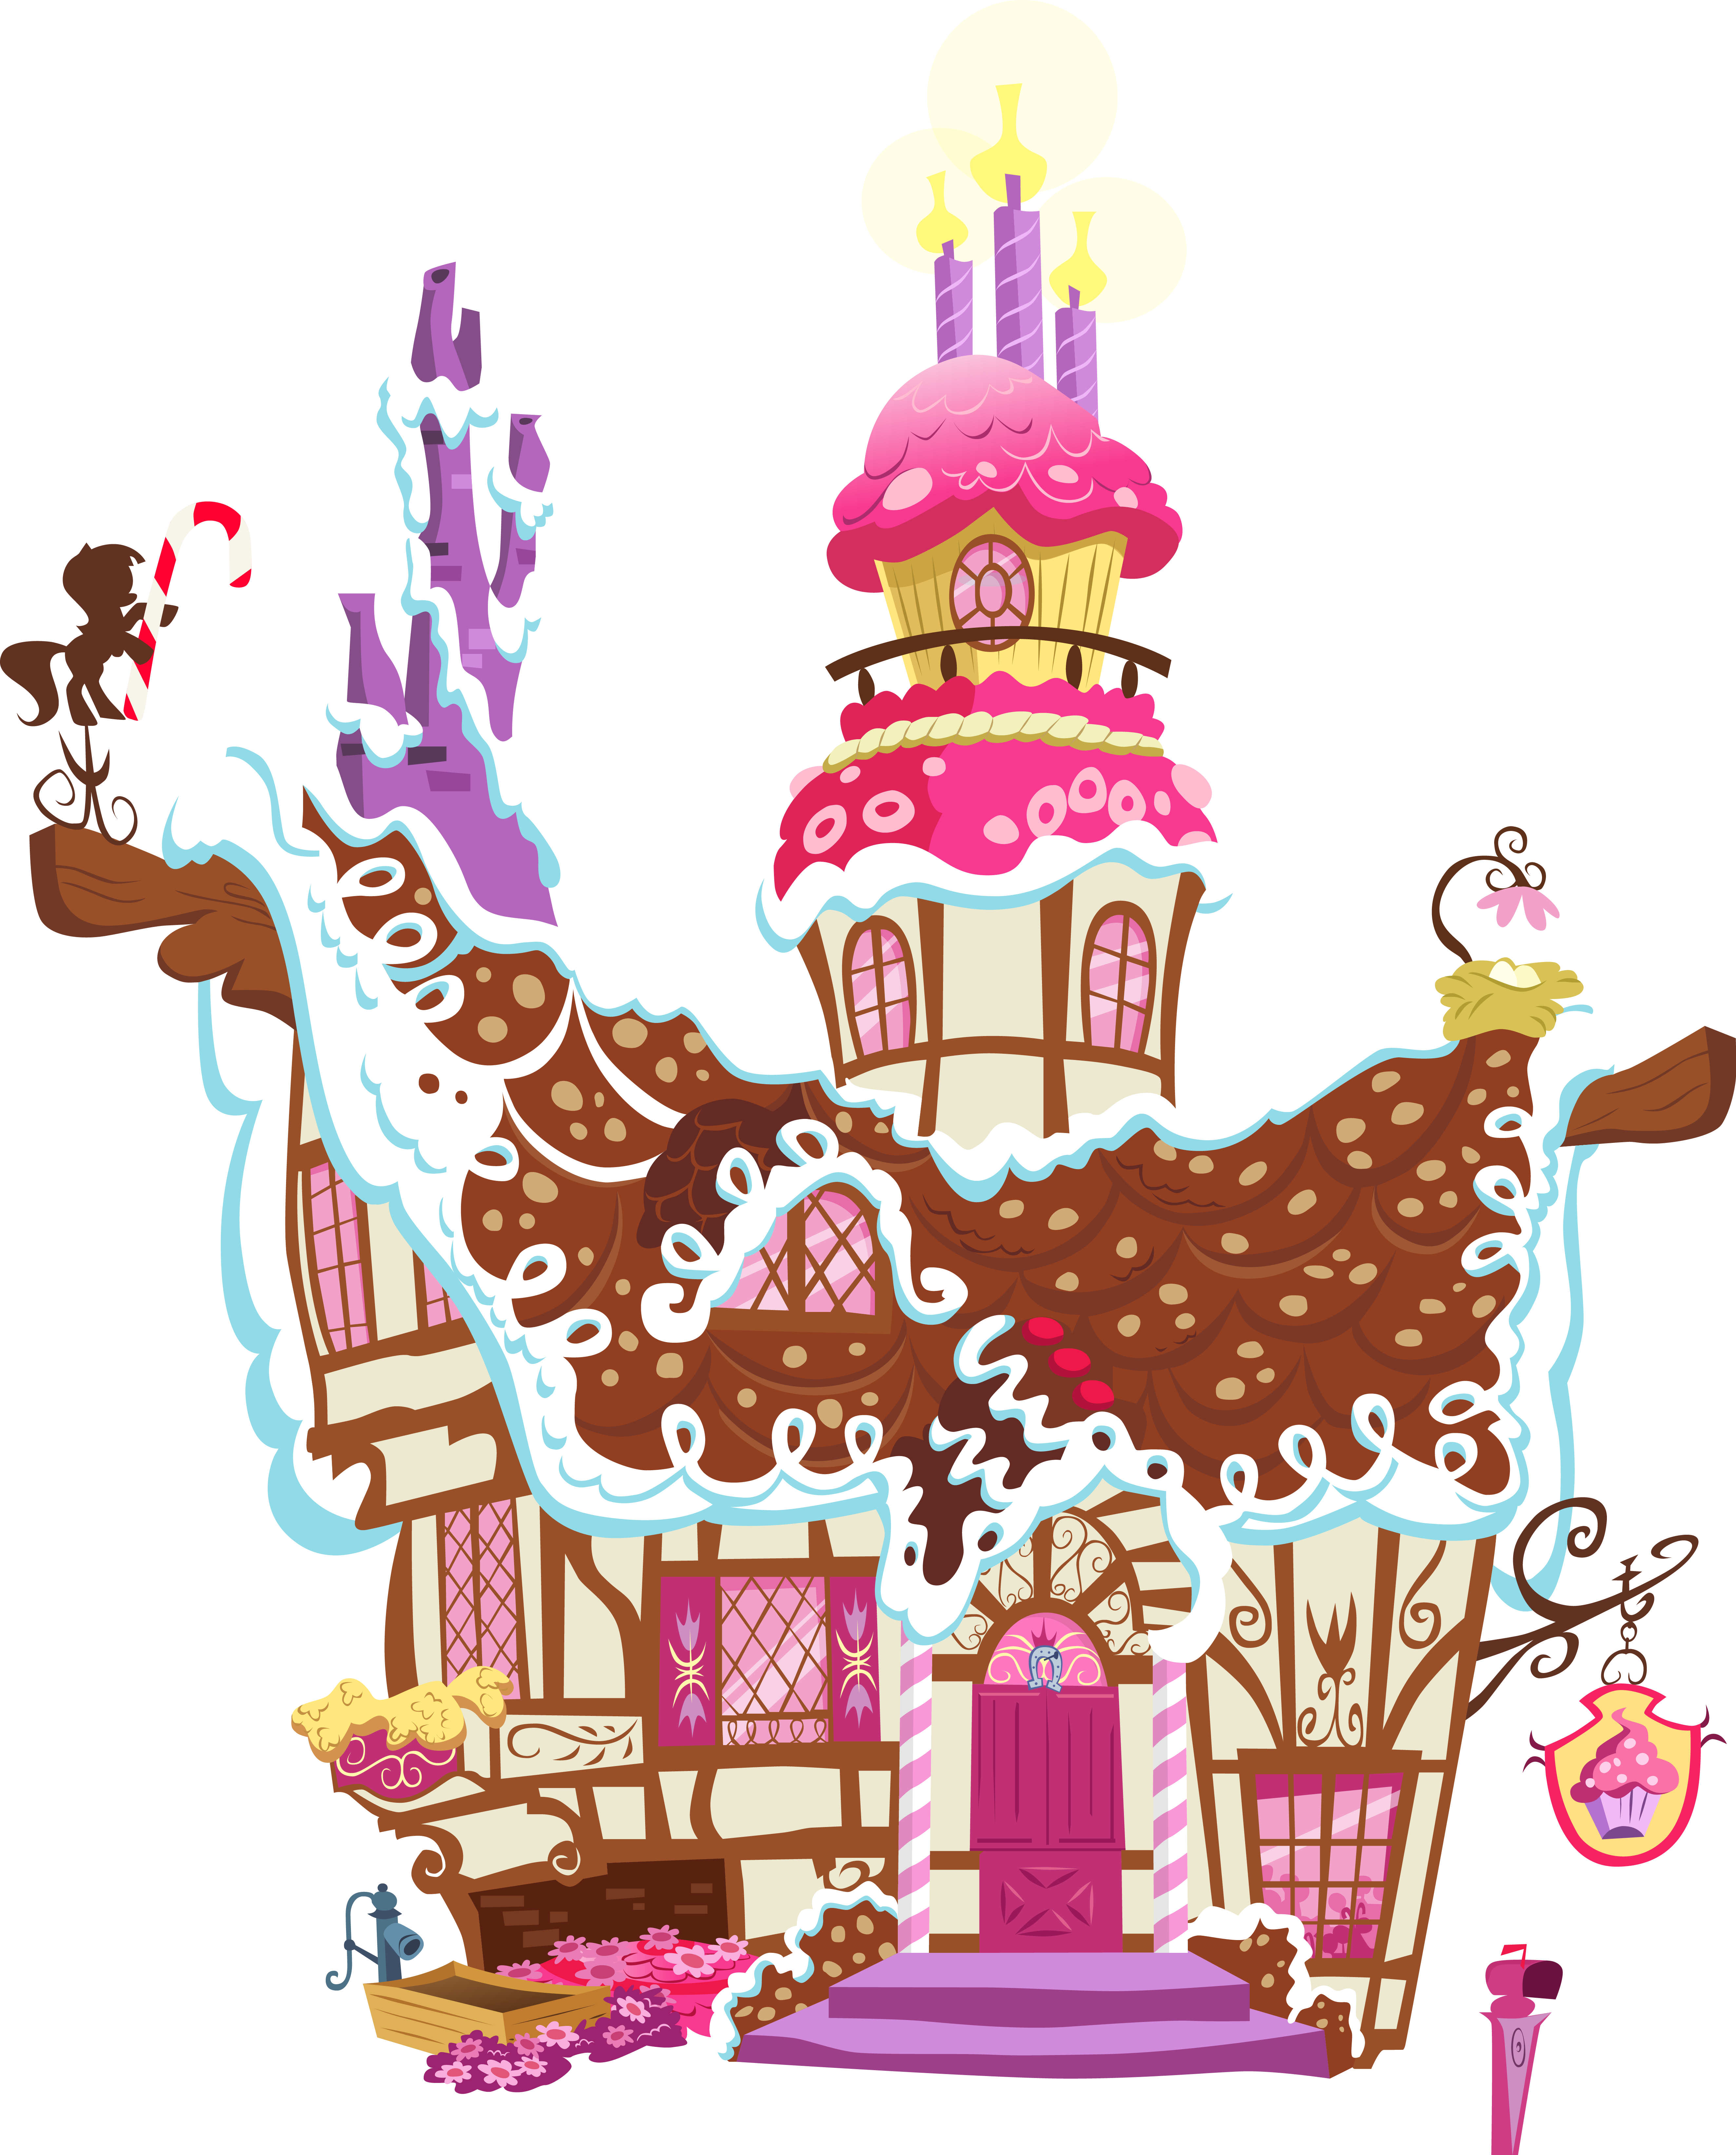 Mlpfim sugarcube corner vector by daafroman on deviantart mlpfim sugarcube corner vector by daafroman stopboris Gallery